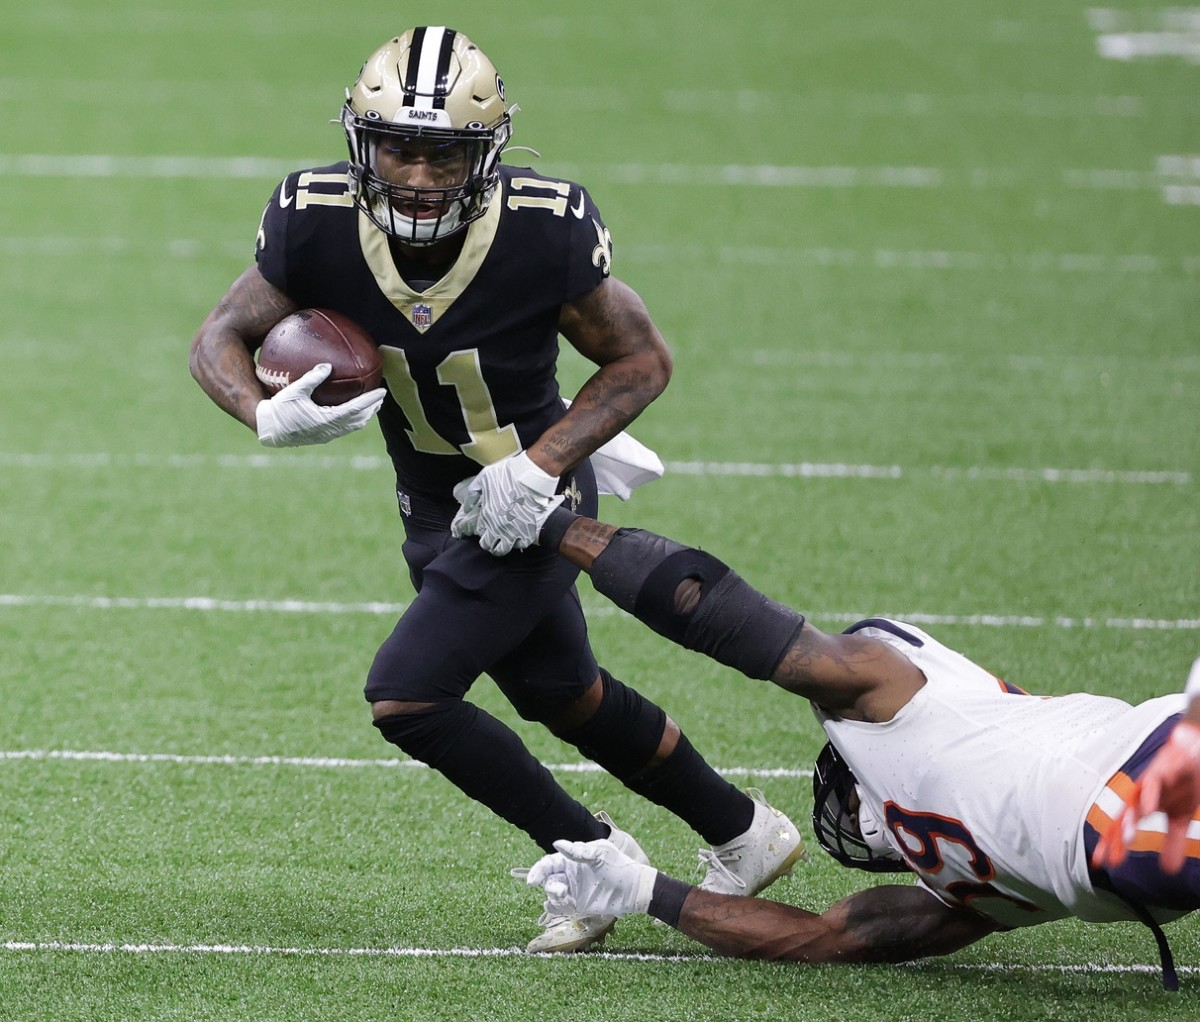 Jan 10, 2021; New Orleans, Louisiana, USA; Saints wide receiver Deonte Harris (11) runs the ball against the Bears in the NFC Wild Card game at Mercedes-Benz Superdome. Mandatory Credit: Derick E. Hingle-USA TODAY